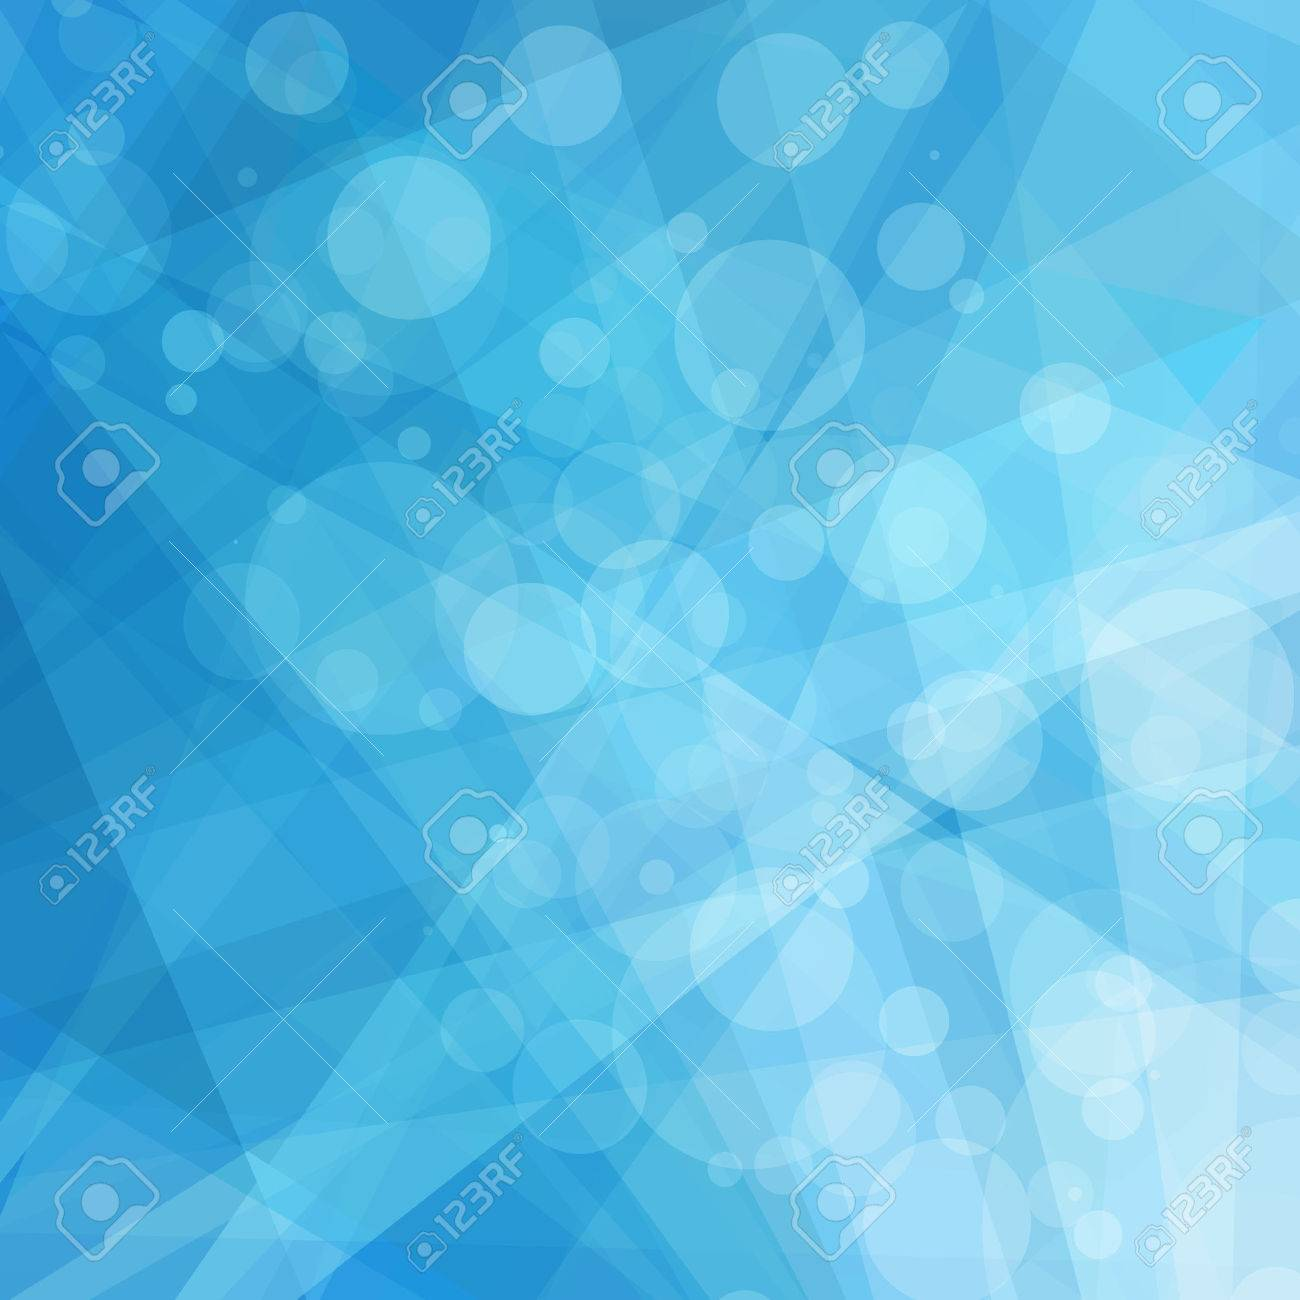 Abstract Geometric Blue And White Background Bright Shades Of